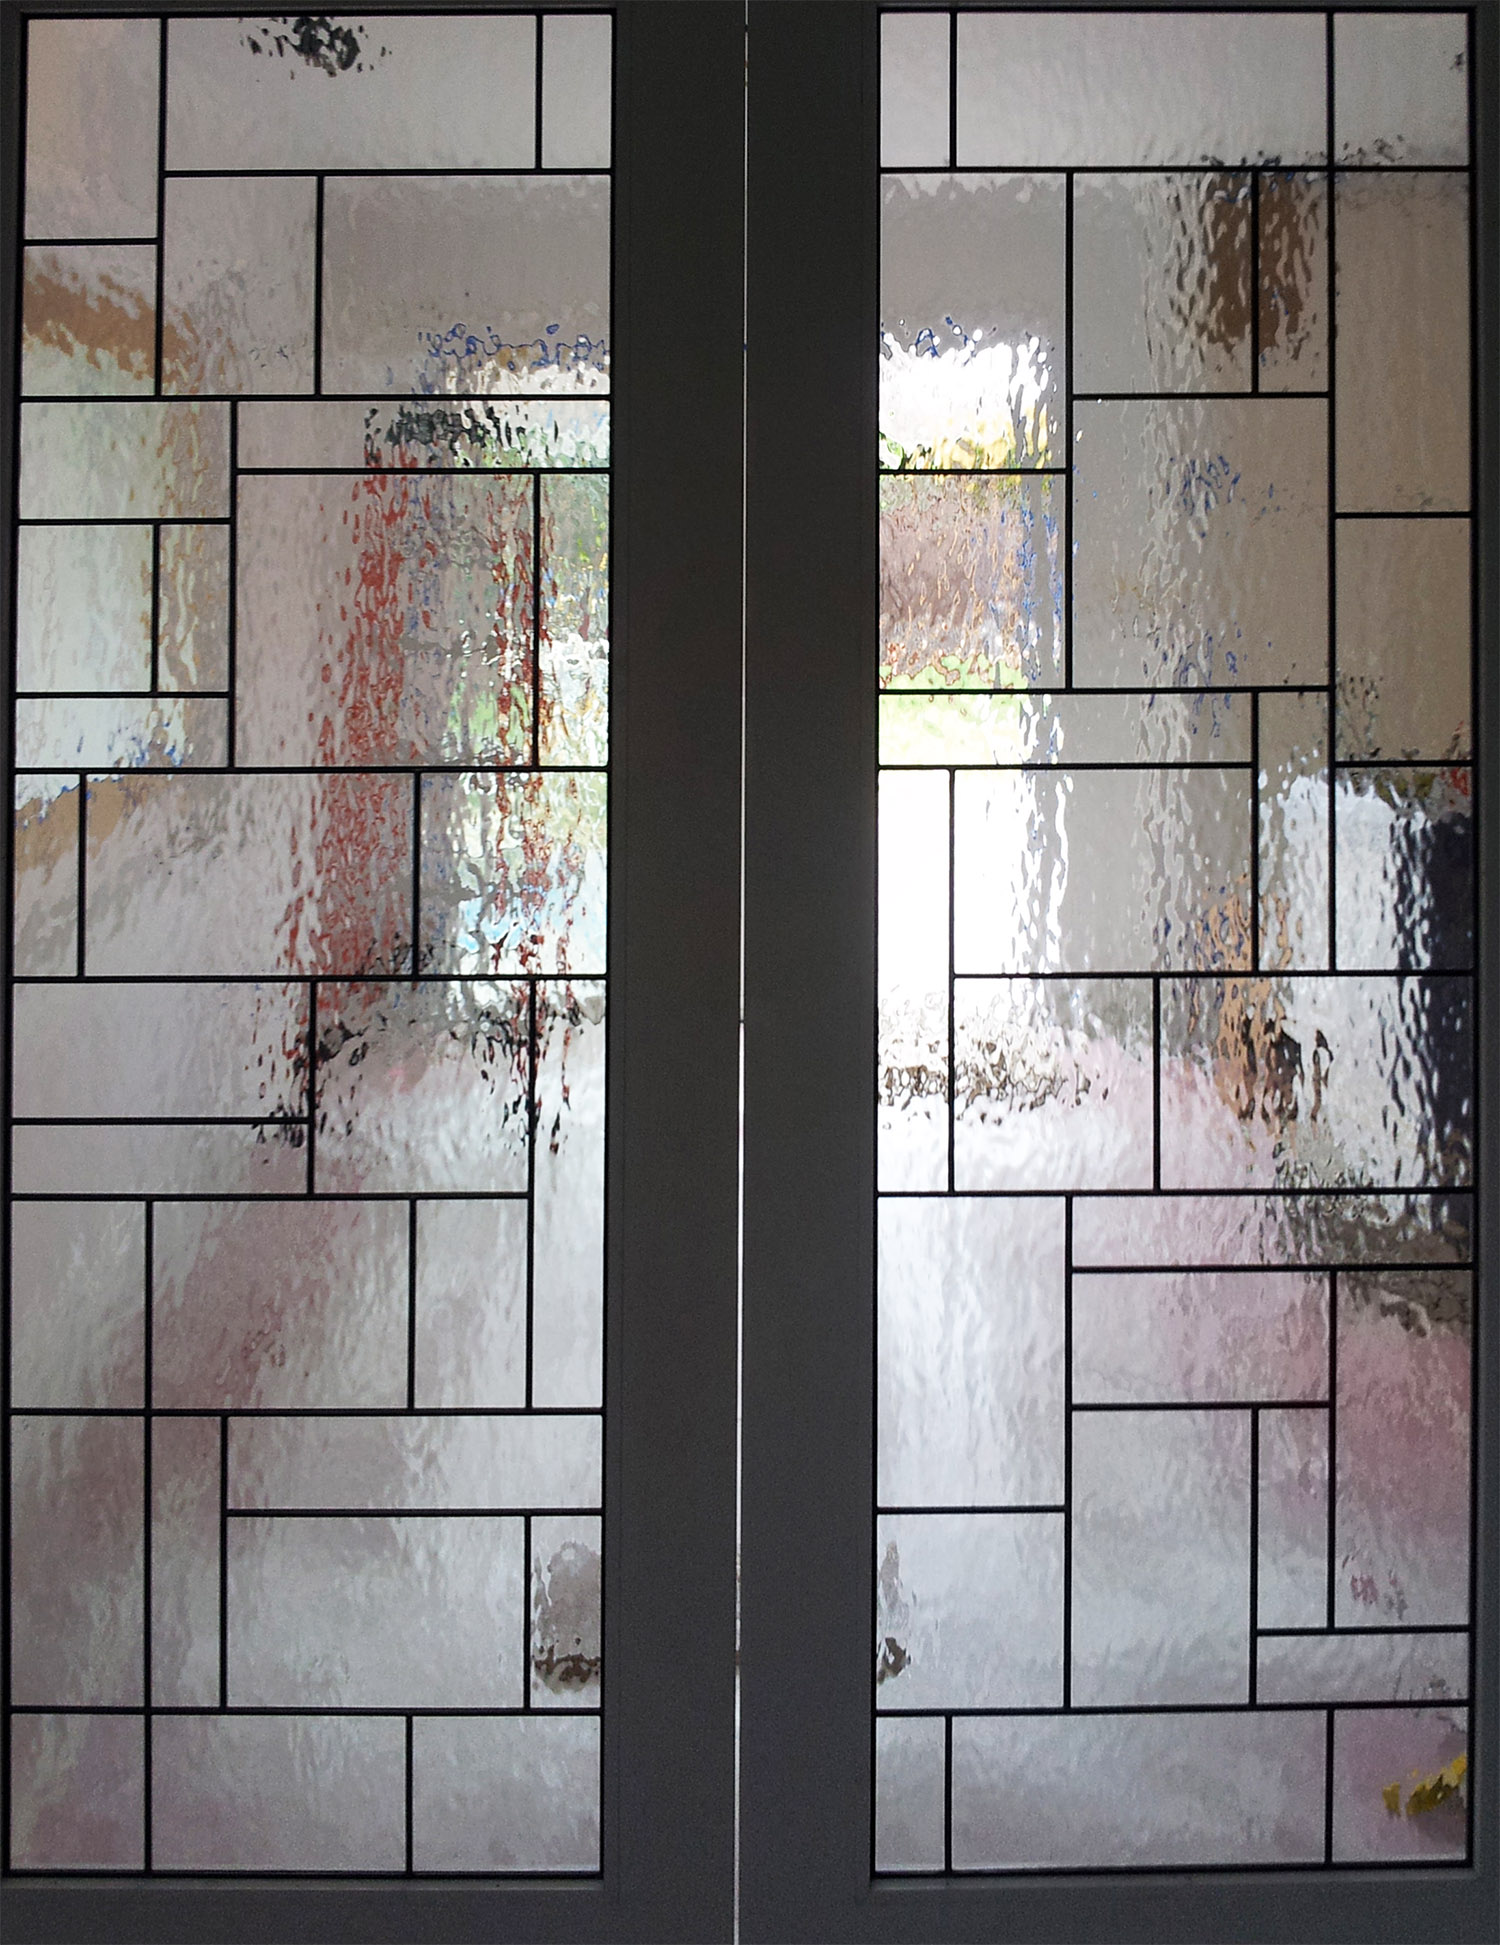 abstract geometric rough rolled clear texture leaded glass stained glass window palo alto atherton california san francisco san jose legacy glass.jpg